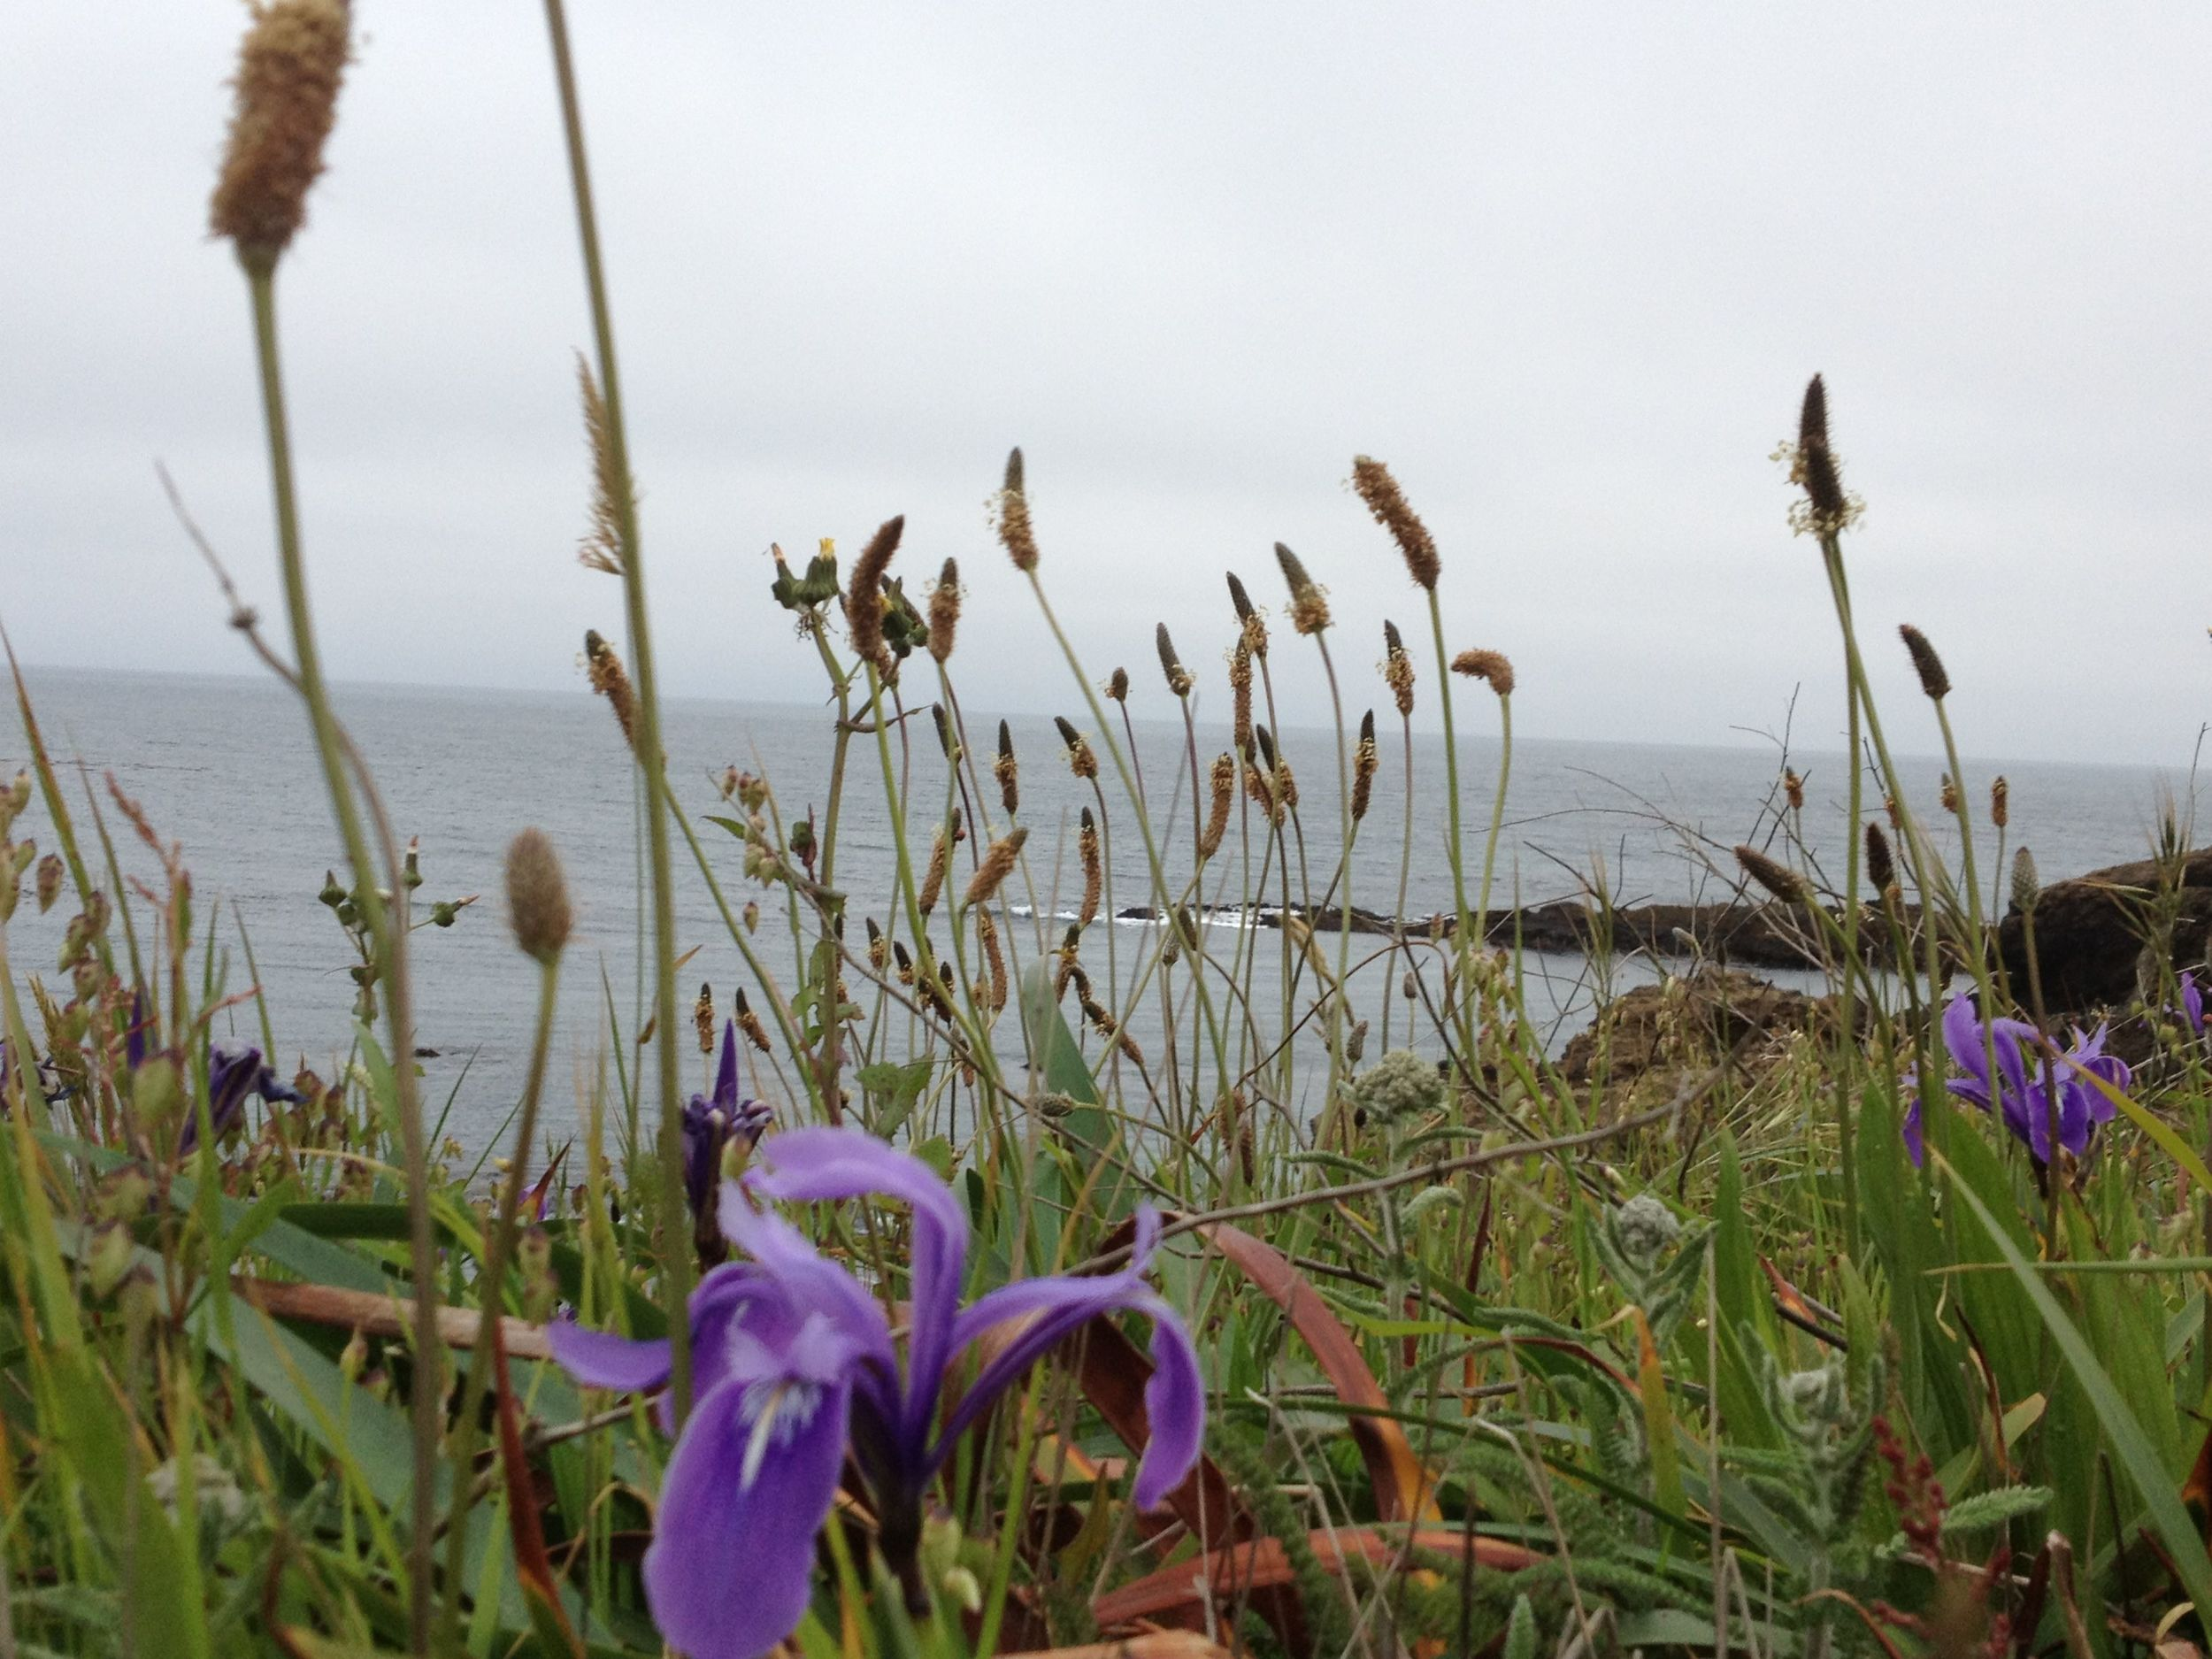 Wandering the bluff in Mendocino, CA you can count on the usually diffused grey days which, like the desert, makes the colors of these wild Irises pop.